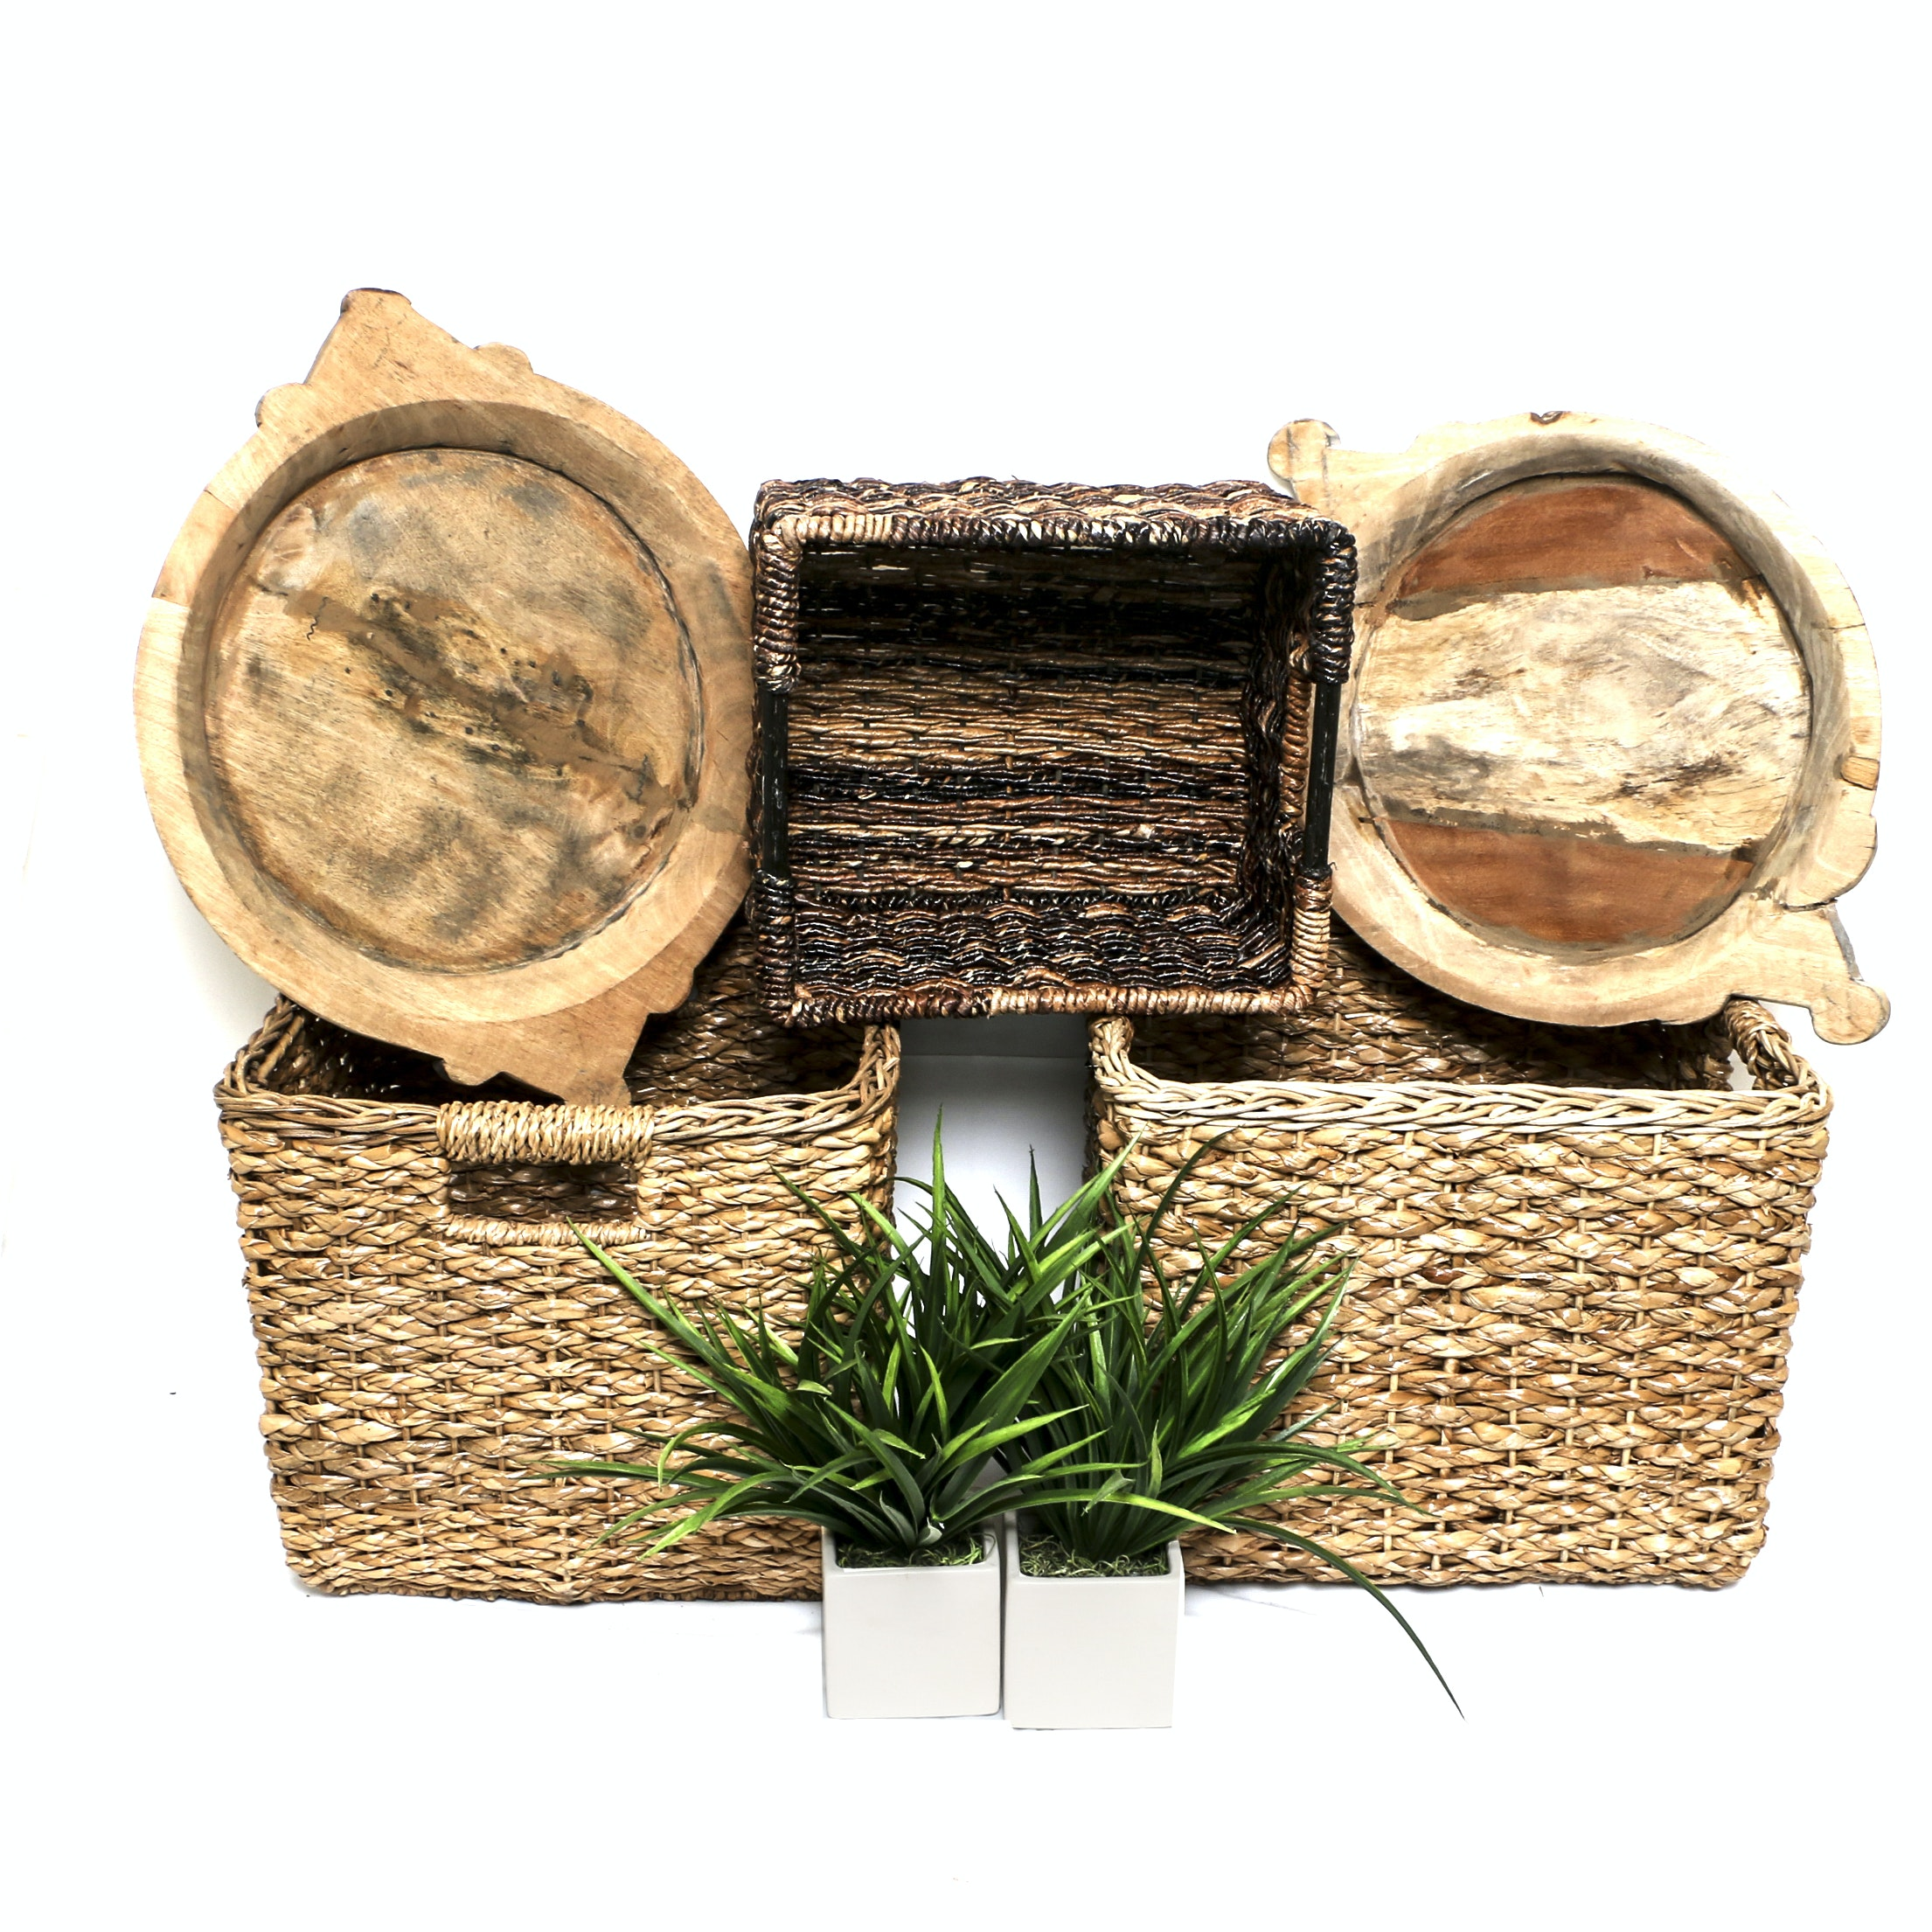 Decorative Storage Baskets, Carved Natural Wood Bowls, and Faux Plants